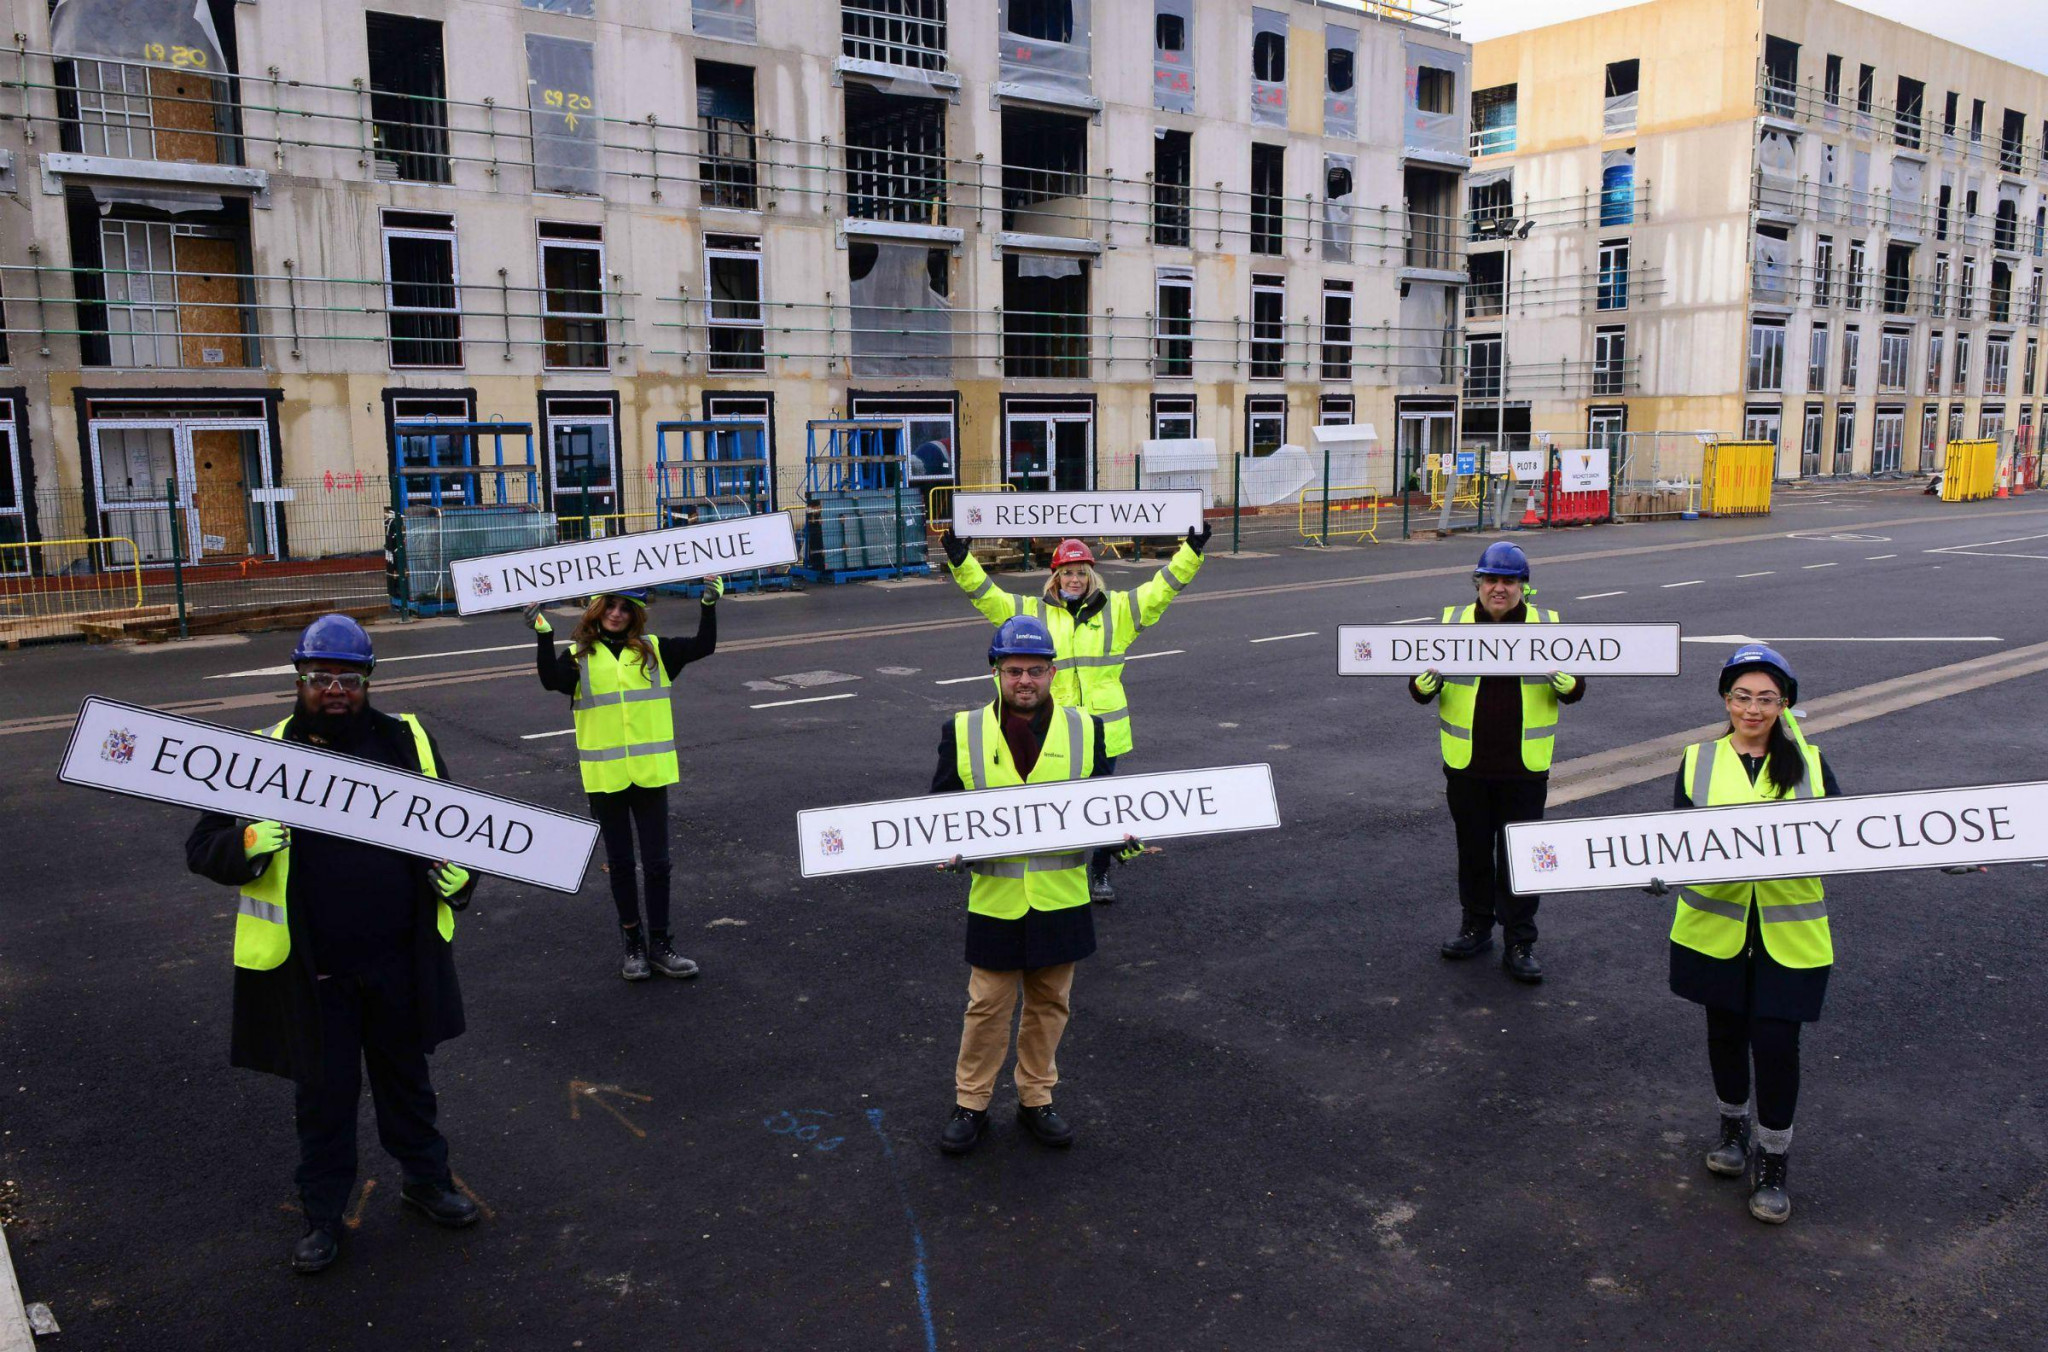 New street names inspired by values of the Commonwealth Sport Movement have been unveiled ©Birmingham City Council